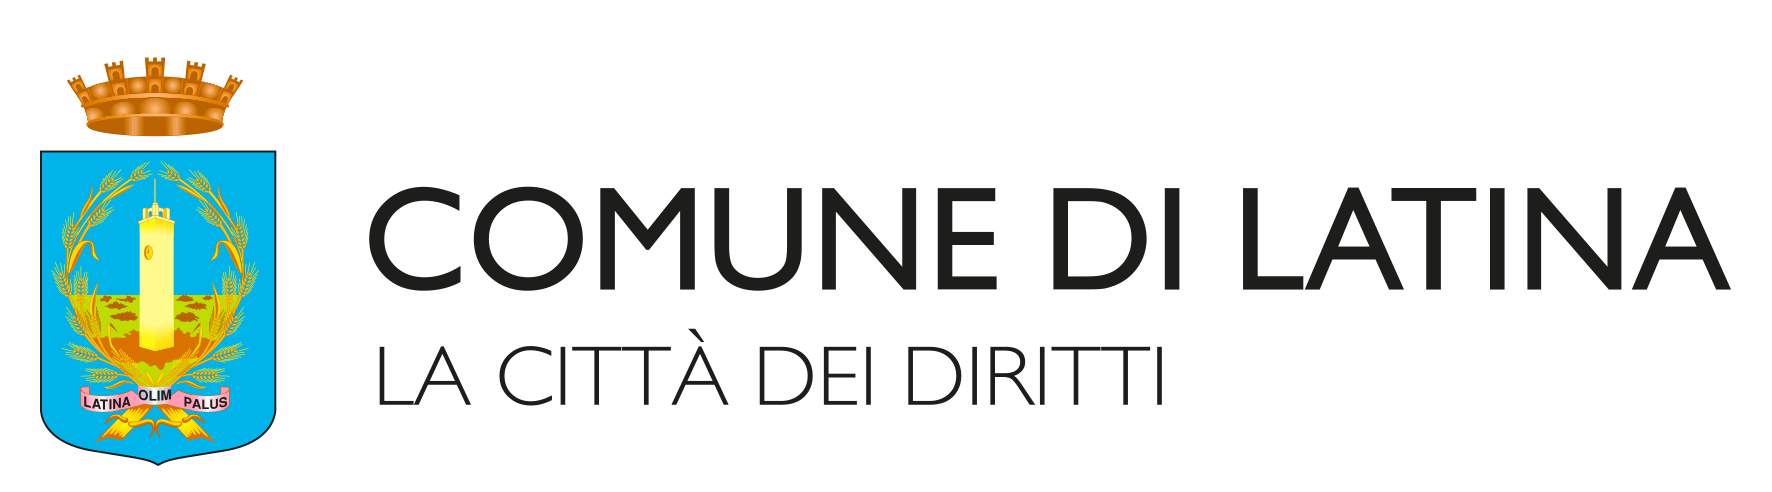 Comune di Latina